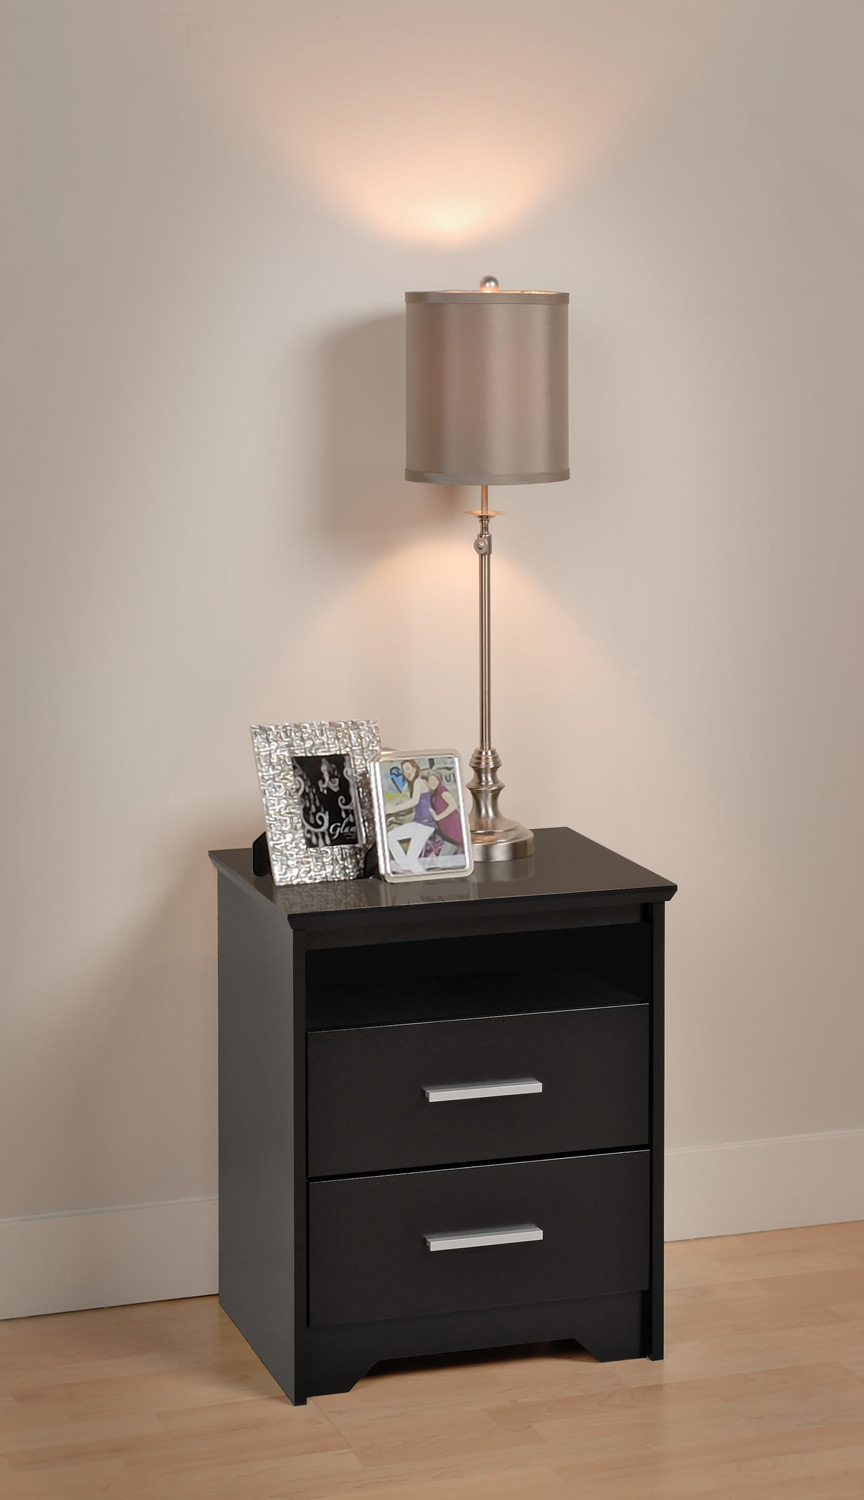 Prepac Coal Harbor 2 Drawer Tall Night Stand With Open